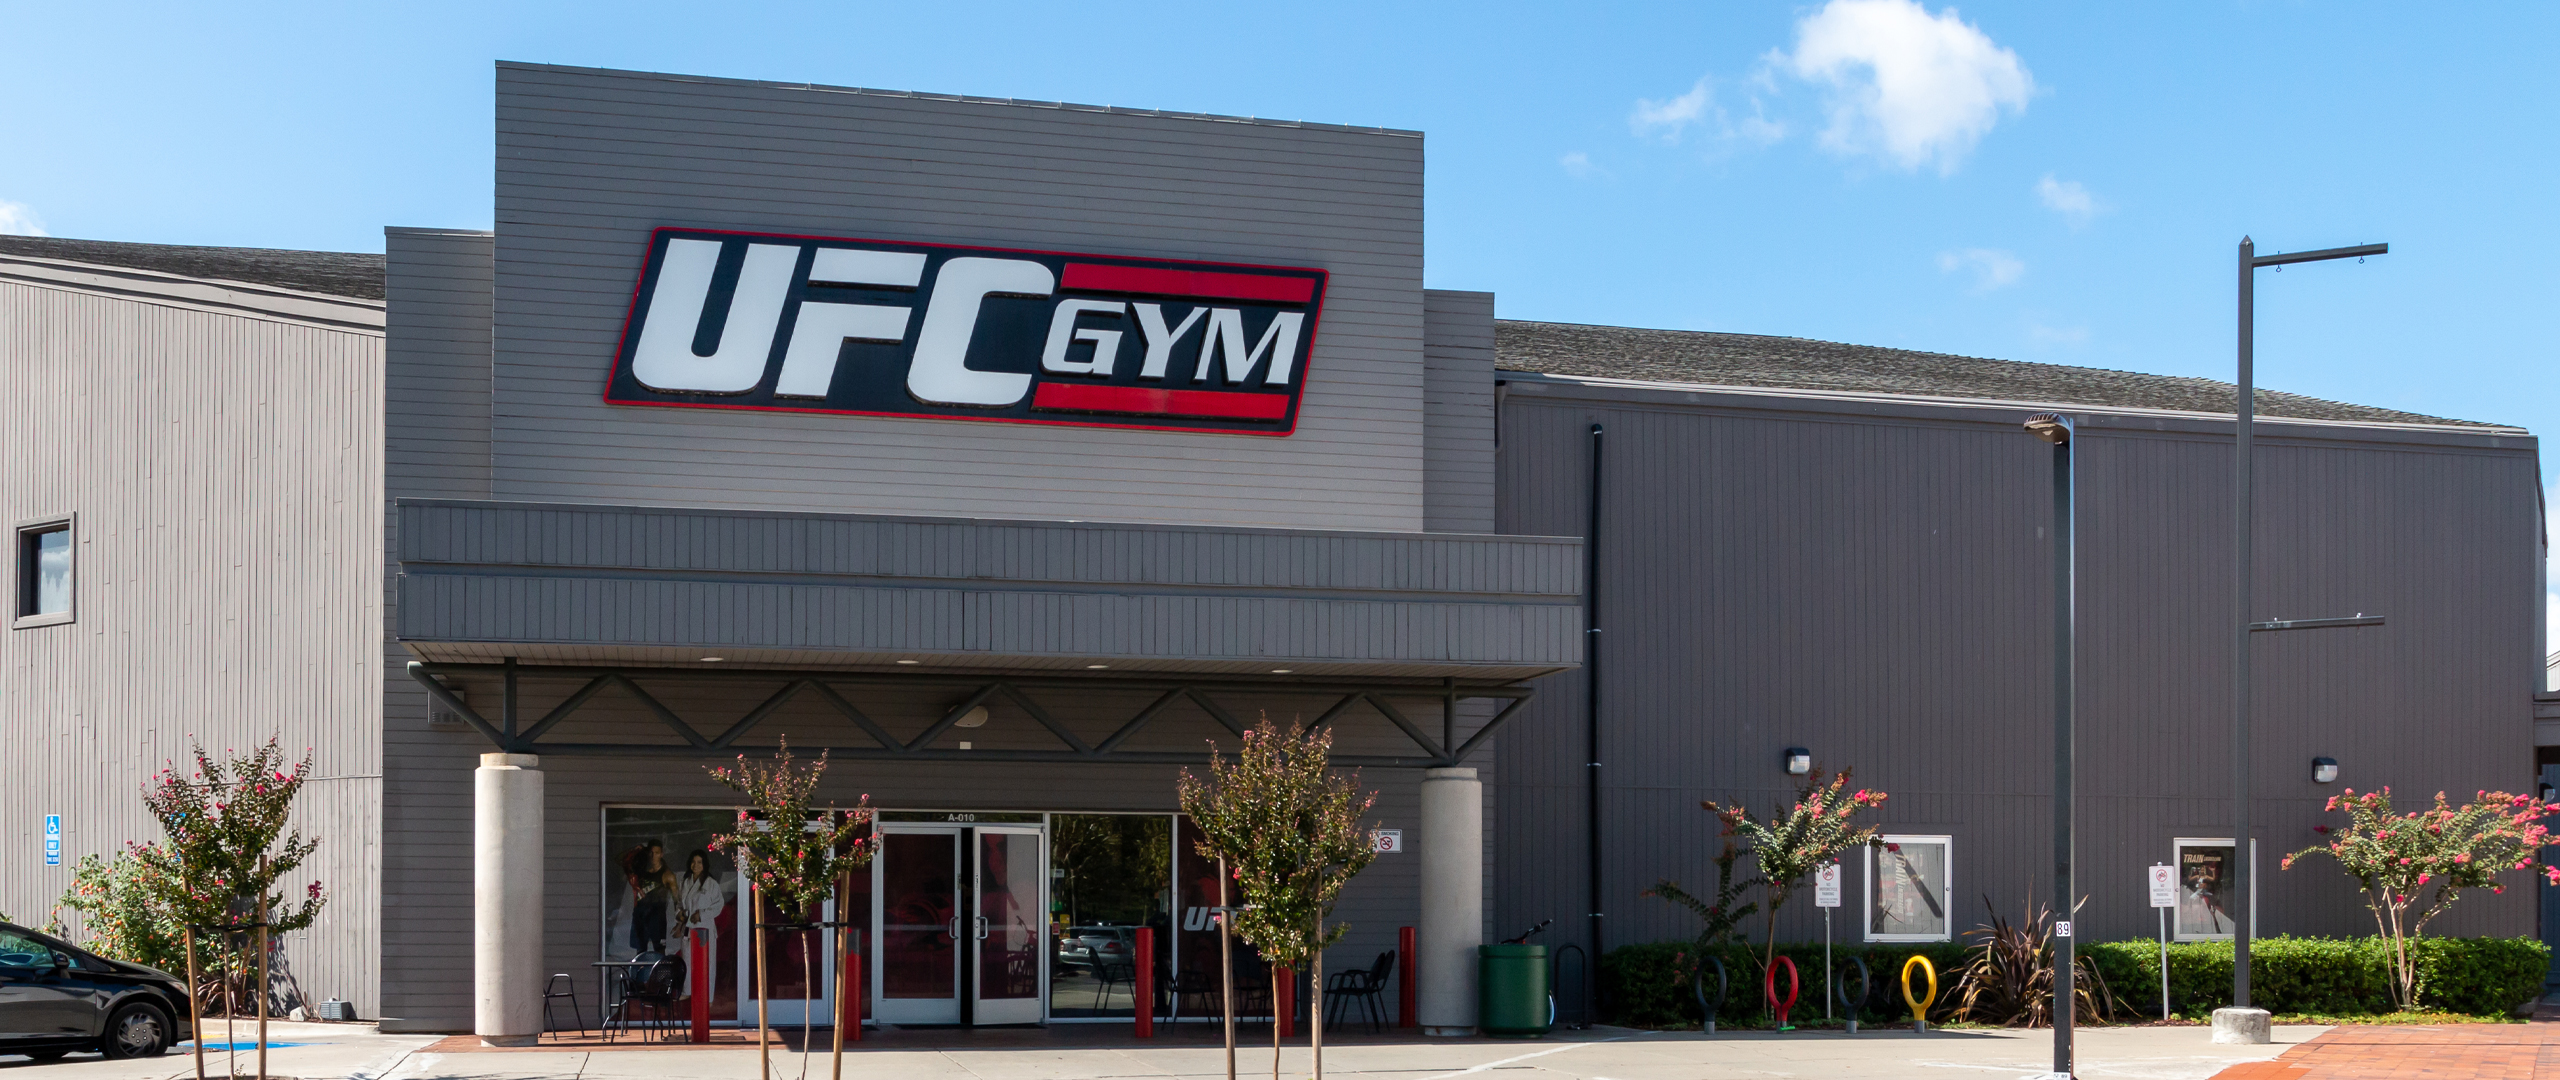 First UFC GYM Celebrates 10 Years Featured Image